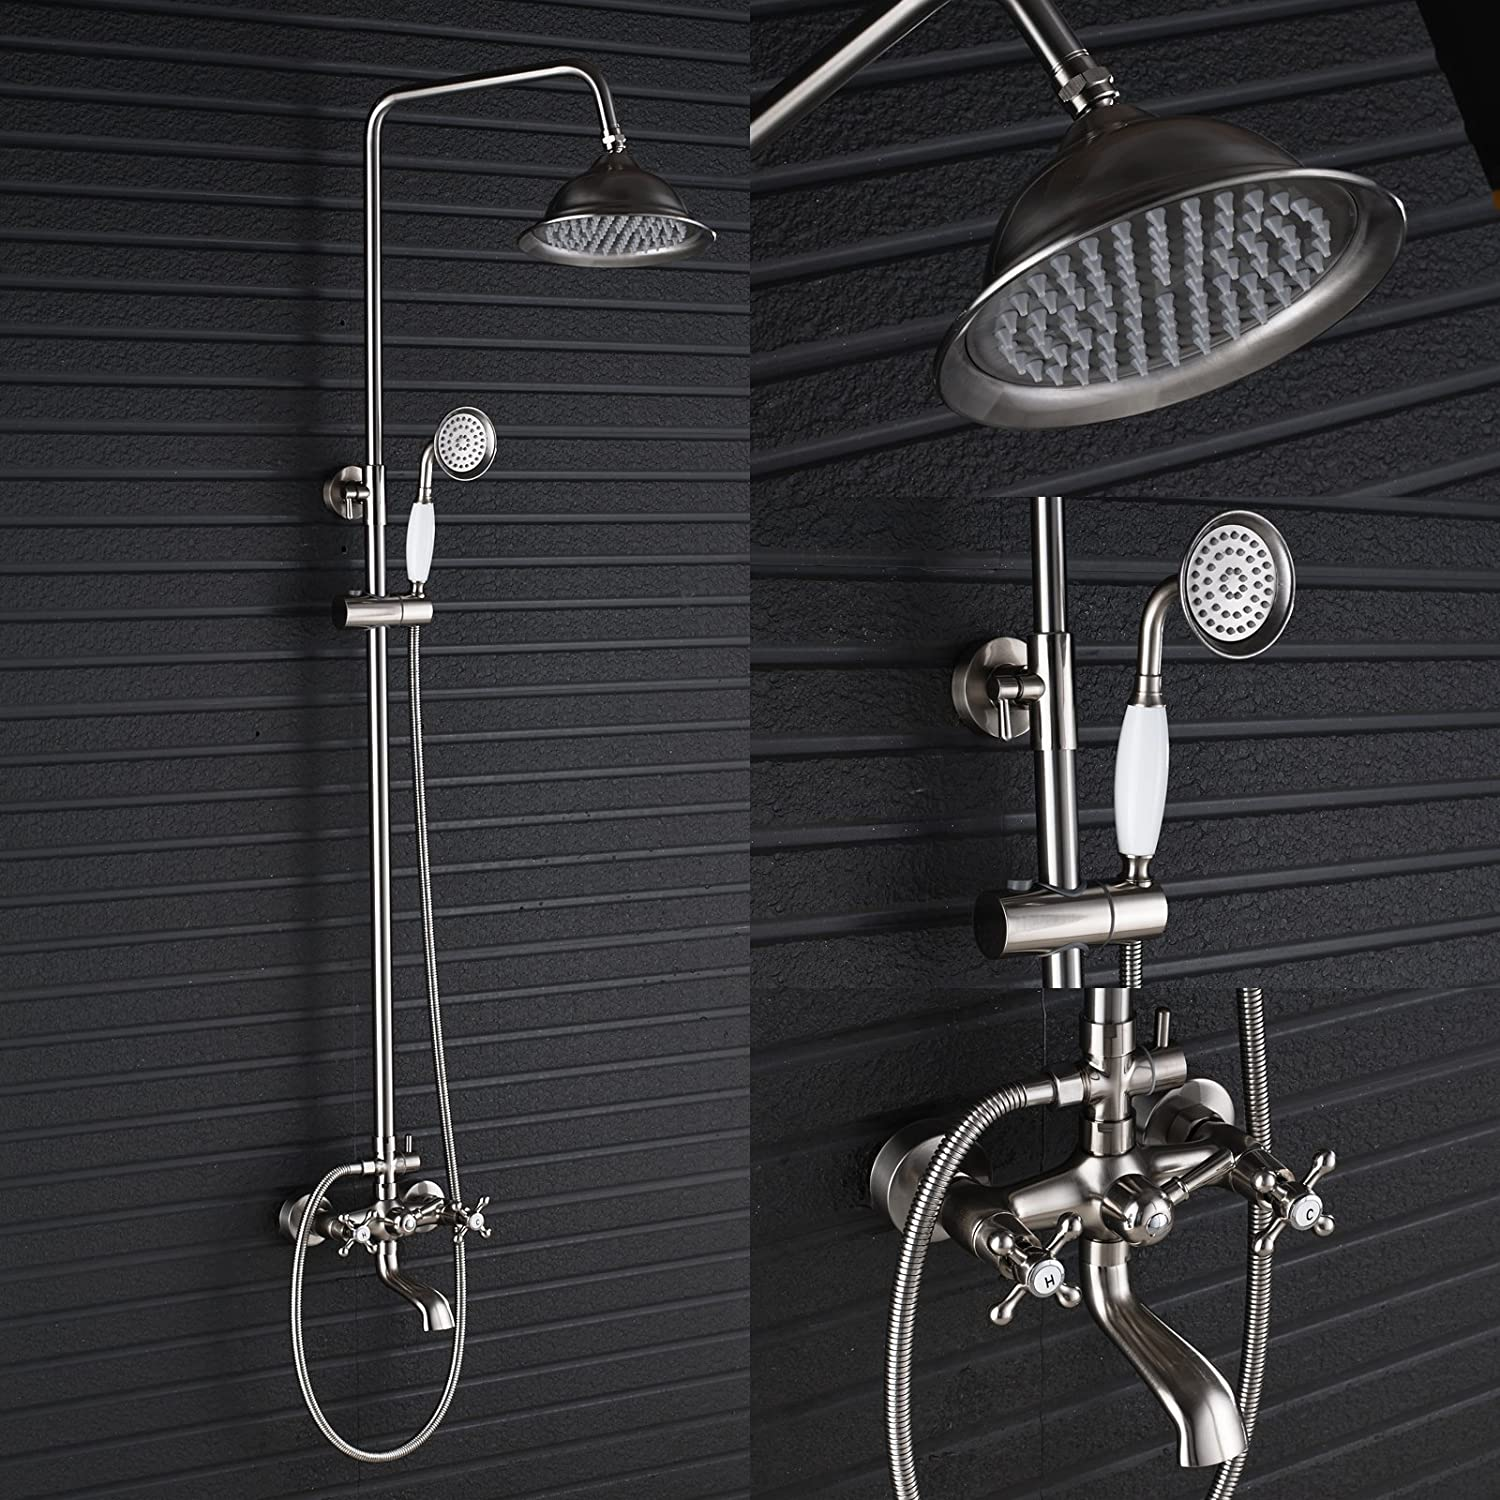 Rozin Brushed Nickel Round Rainfall Shower Set Tub Spout Faucet with ...